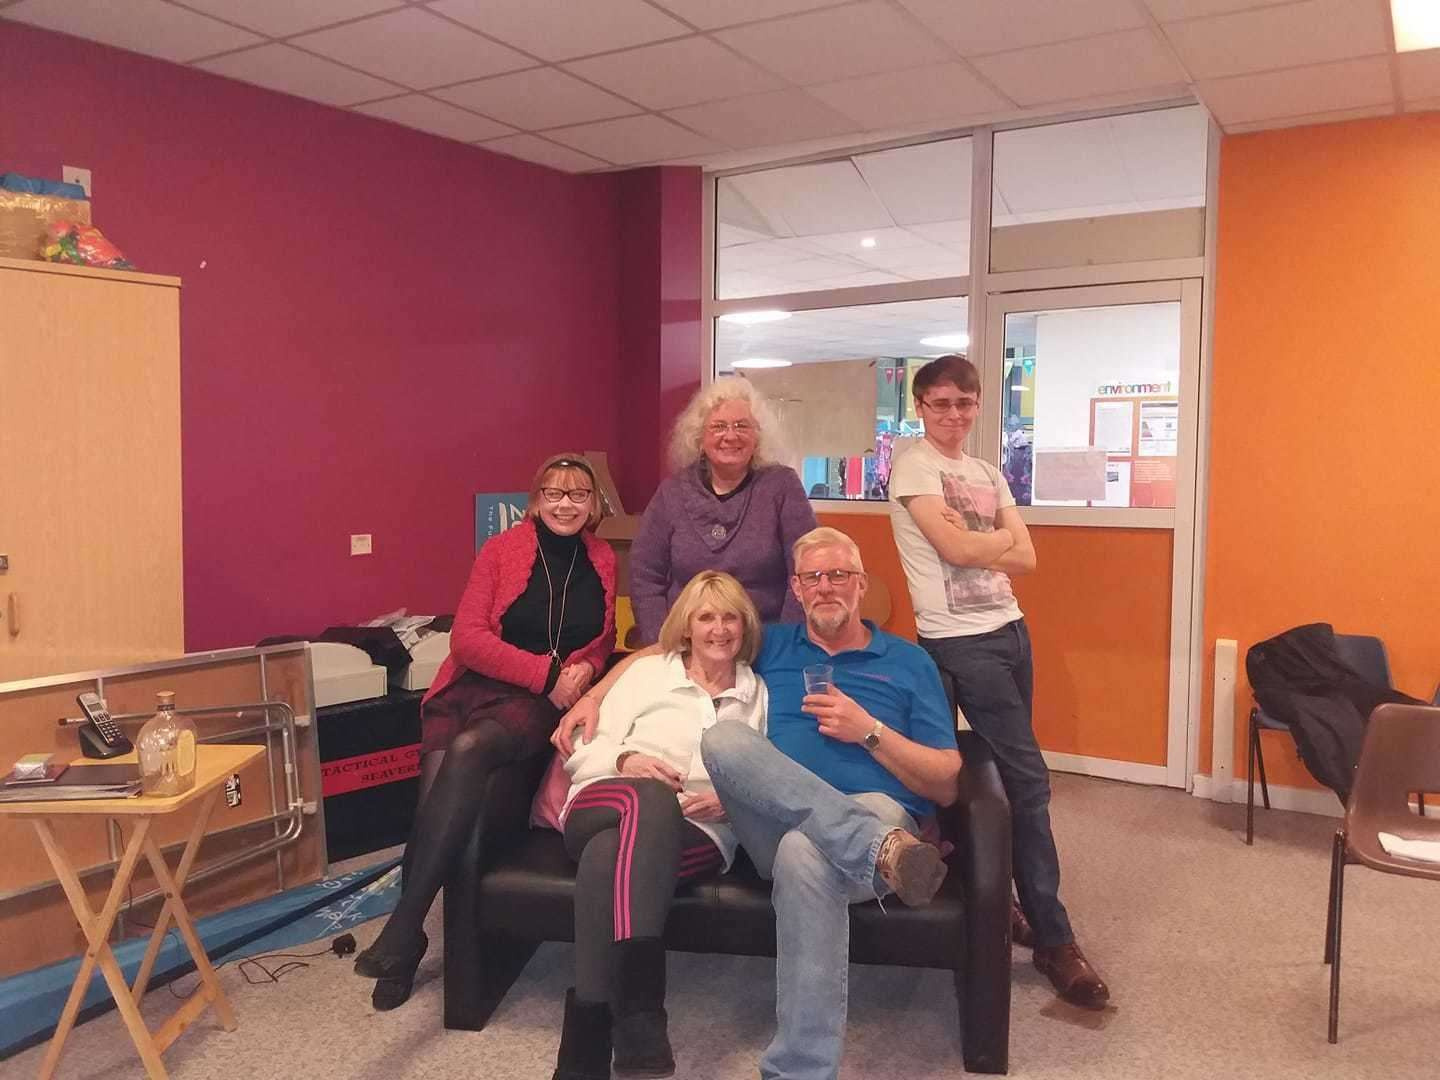 The cast of 'Wind of Change' – Tracey Dene Powell, Rosemary Gibson, Anthea Hardstaff, Gus Sparrow and Philip Wilson. (8965721)